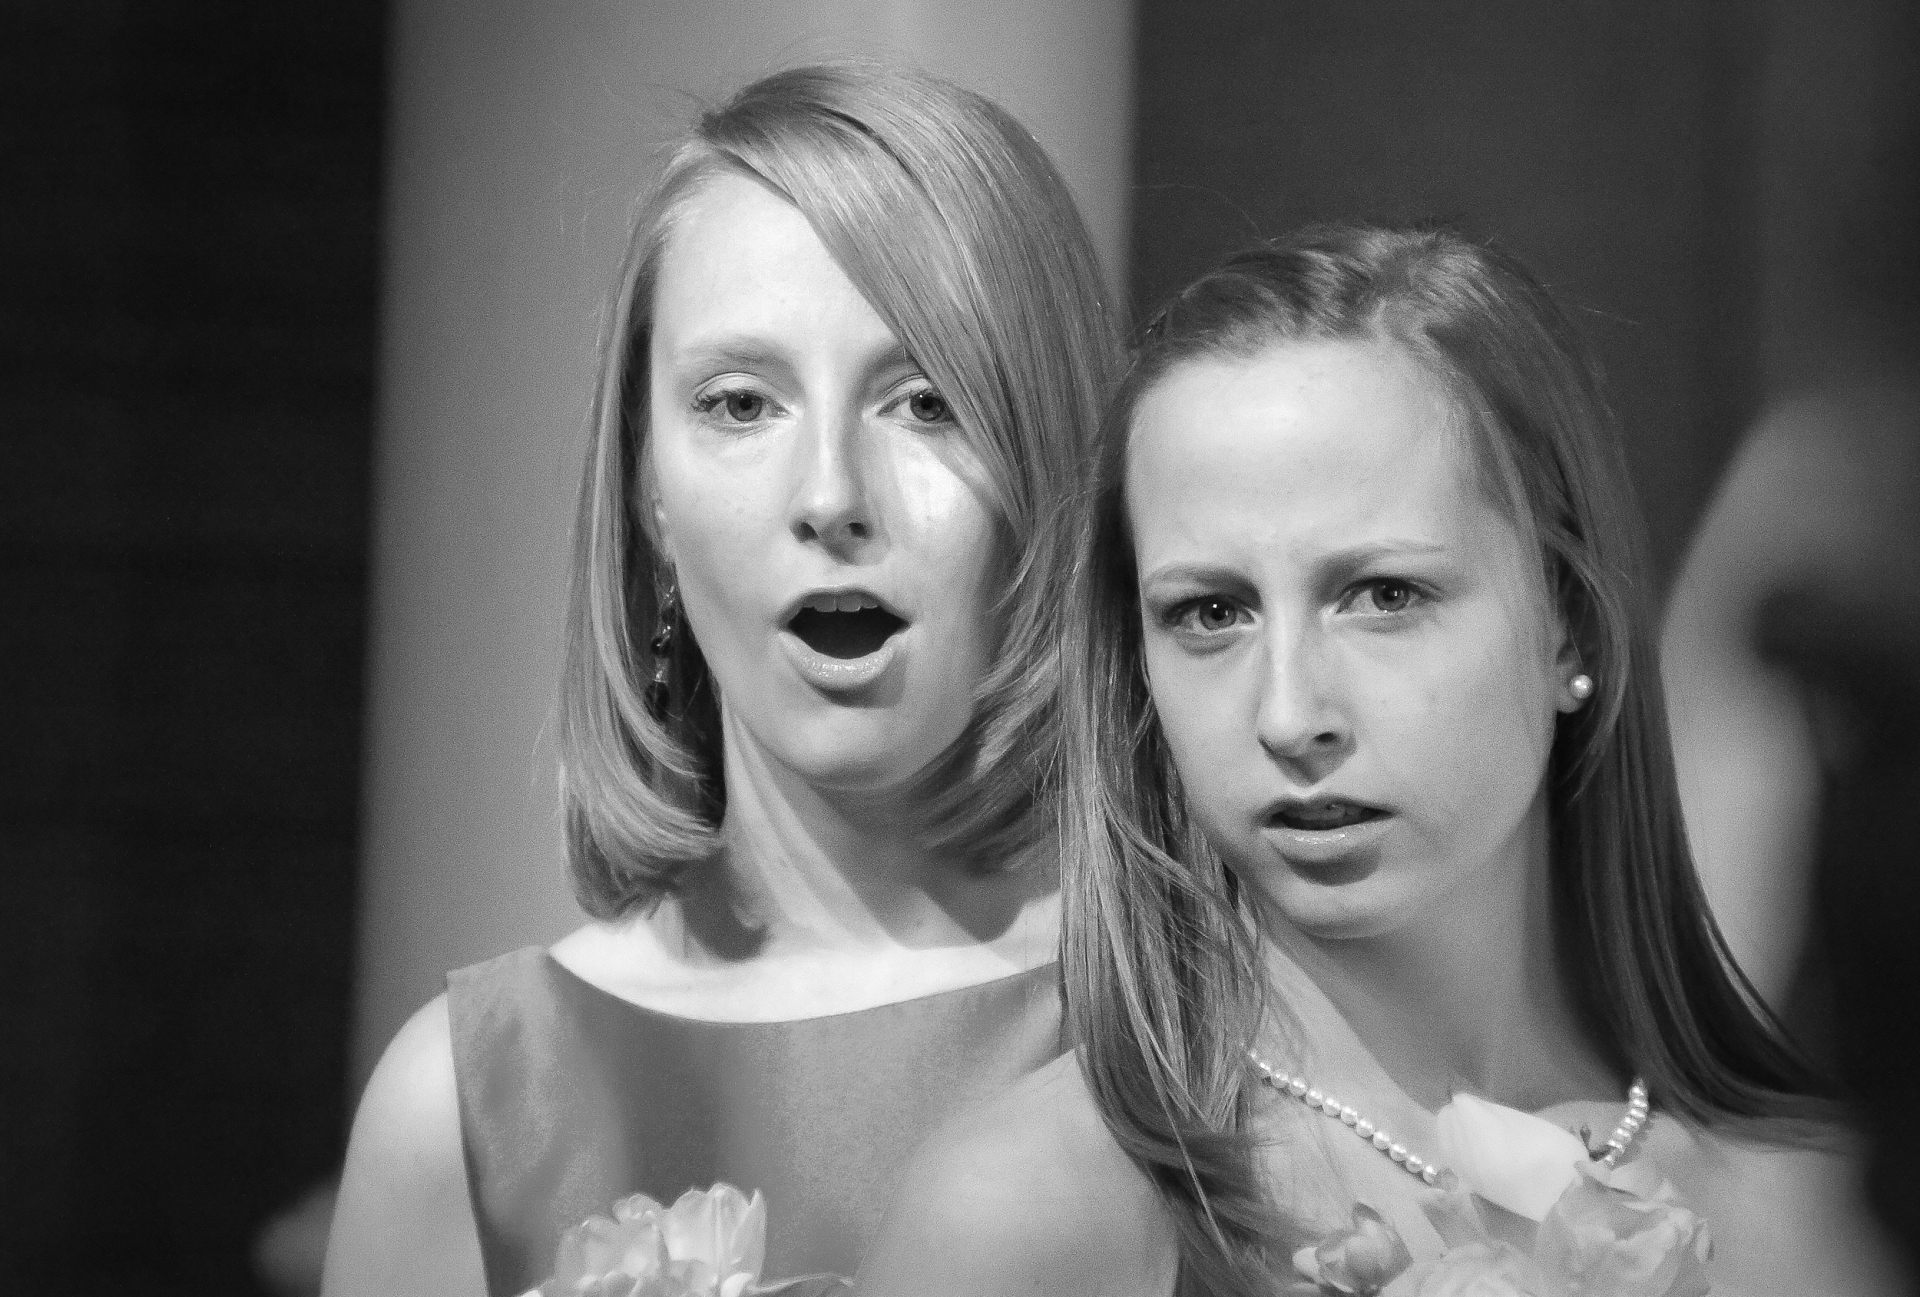 Glenn Memorial UMC Black and White Wedding Image | The daughters respond to the service